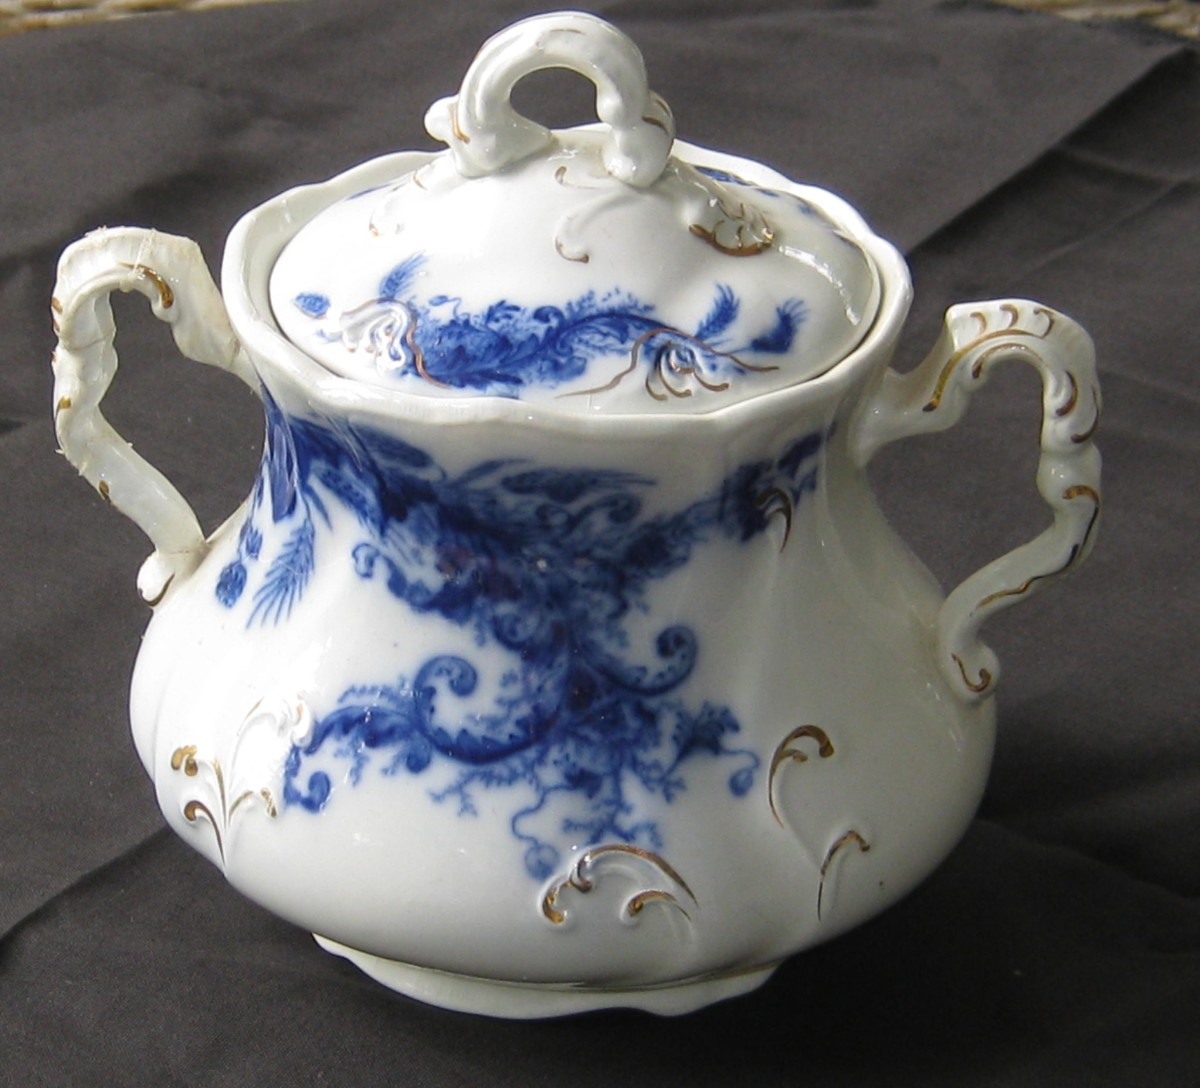 A Flow Blue sugar bowl by Wentworth.  An intact sugar bowl is more valuable than, say, a plate. The sugar bowl has more parts that can break, so the intact handles and lid make this a valuable item.